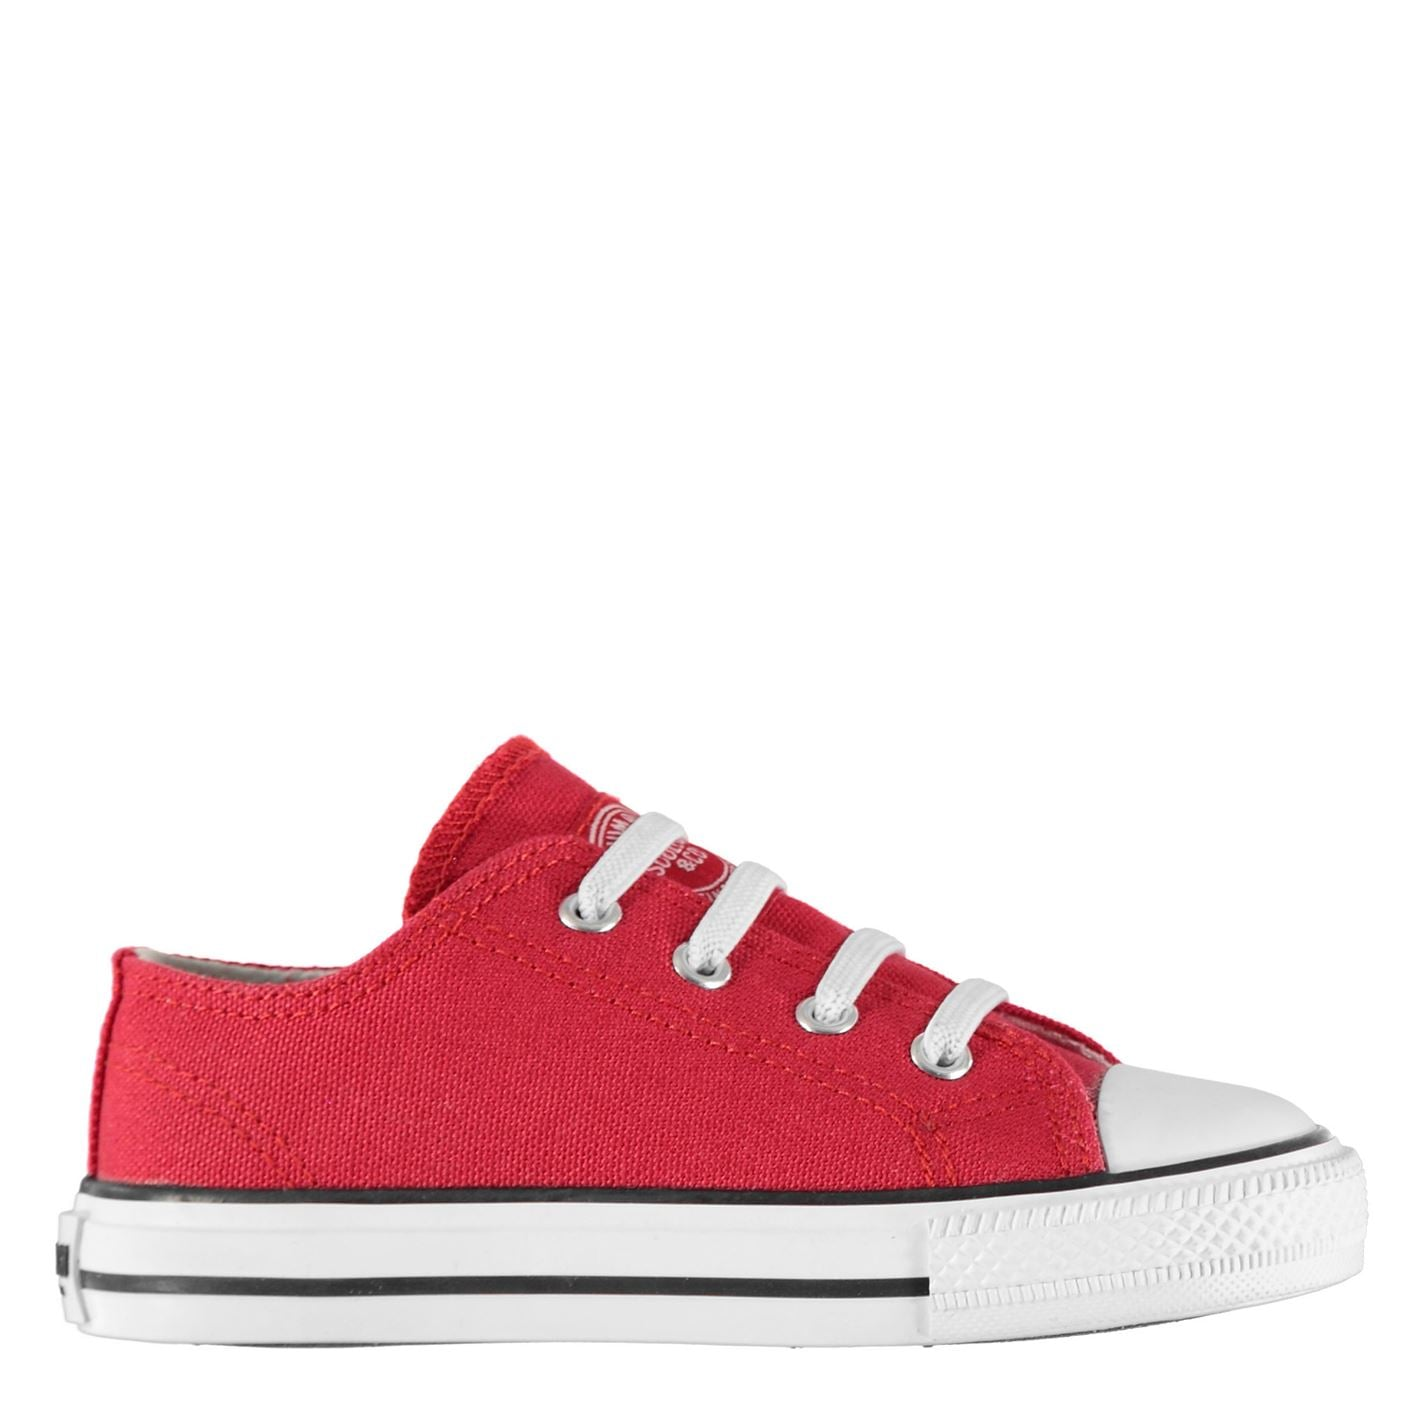 SoulCal Low Infants Canvas Shoes Red